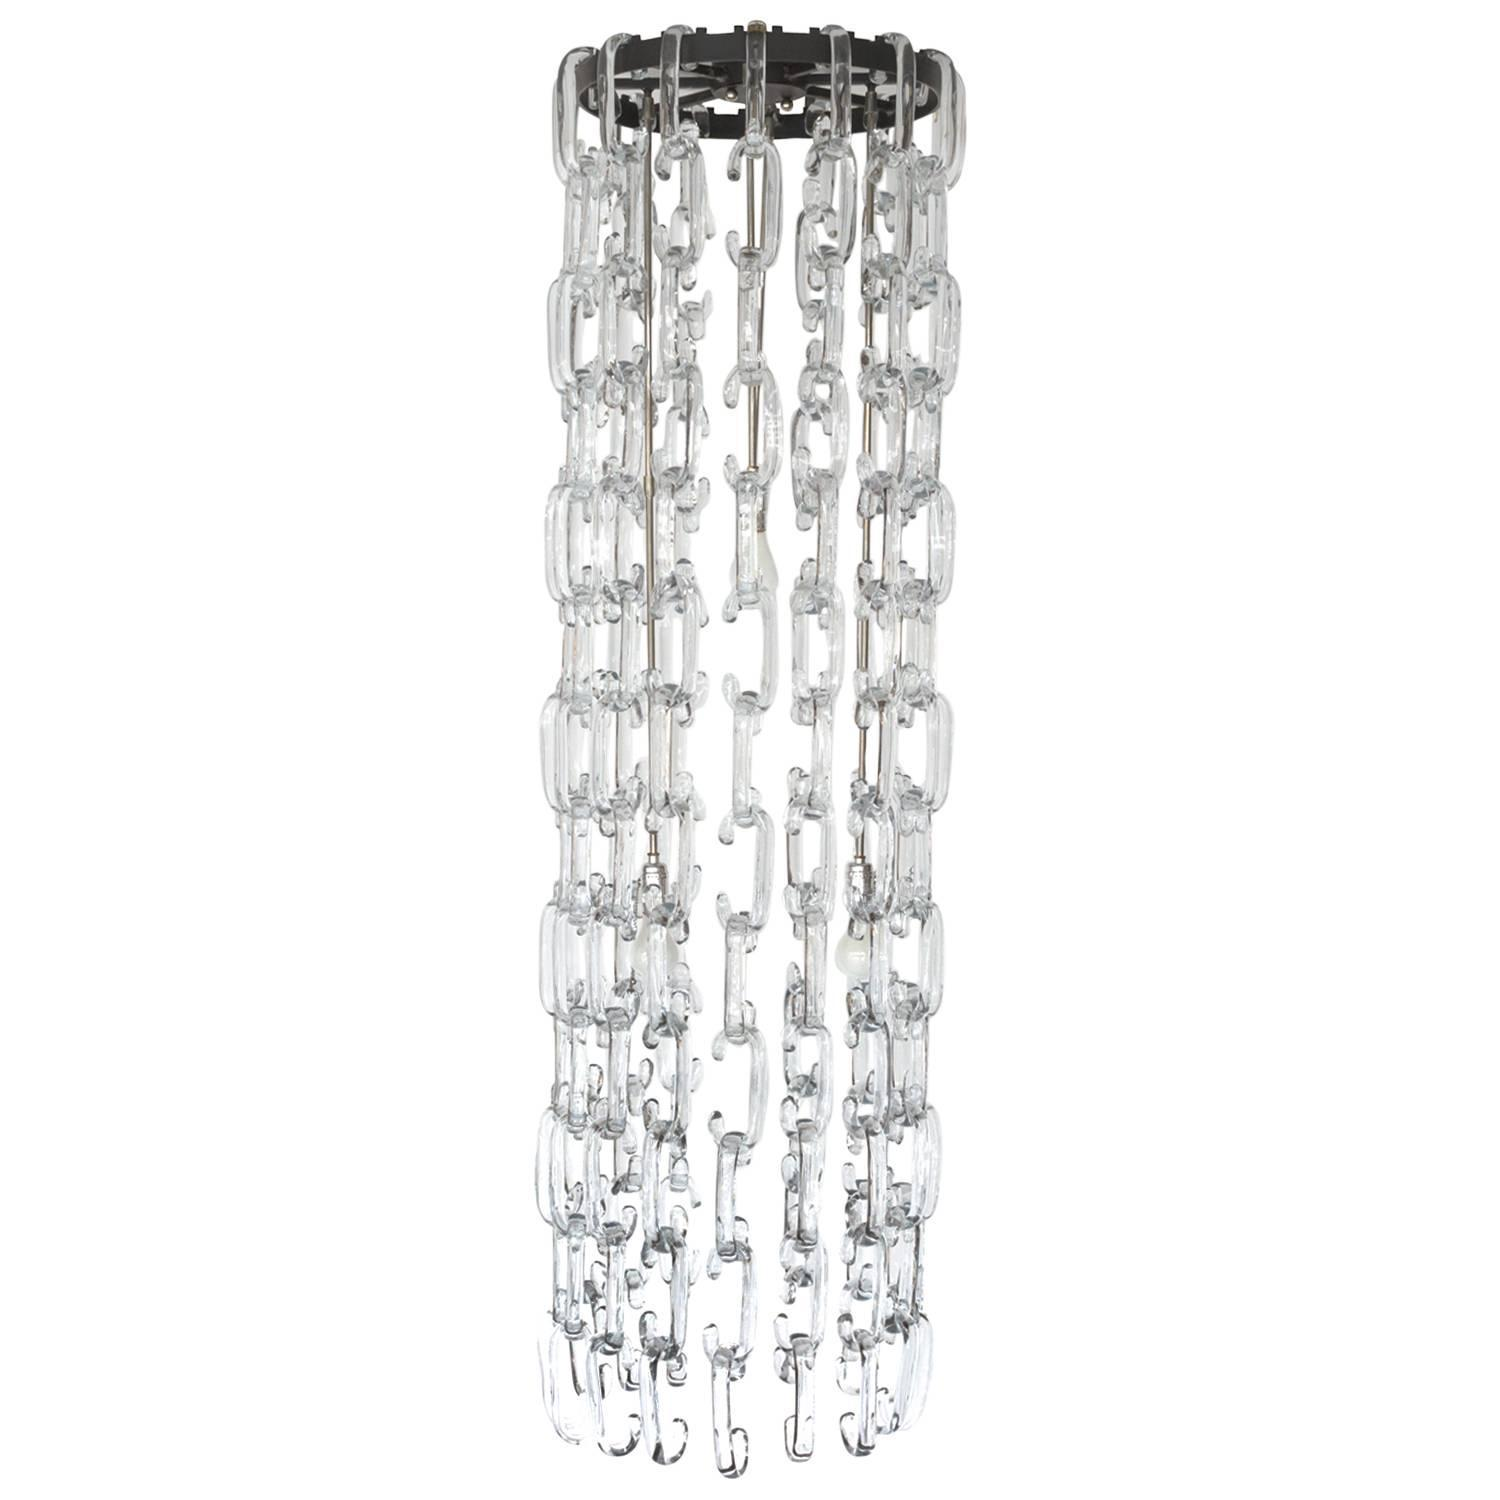 Murano Glass Chain Link Chandelier by Gino Vistosi at 1stdibs